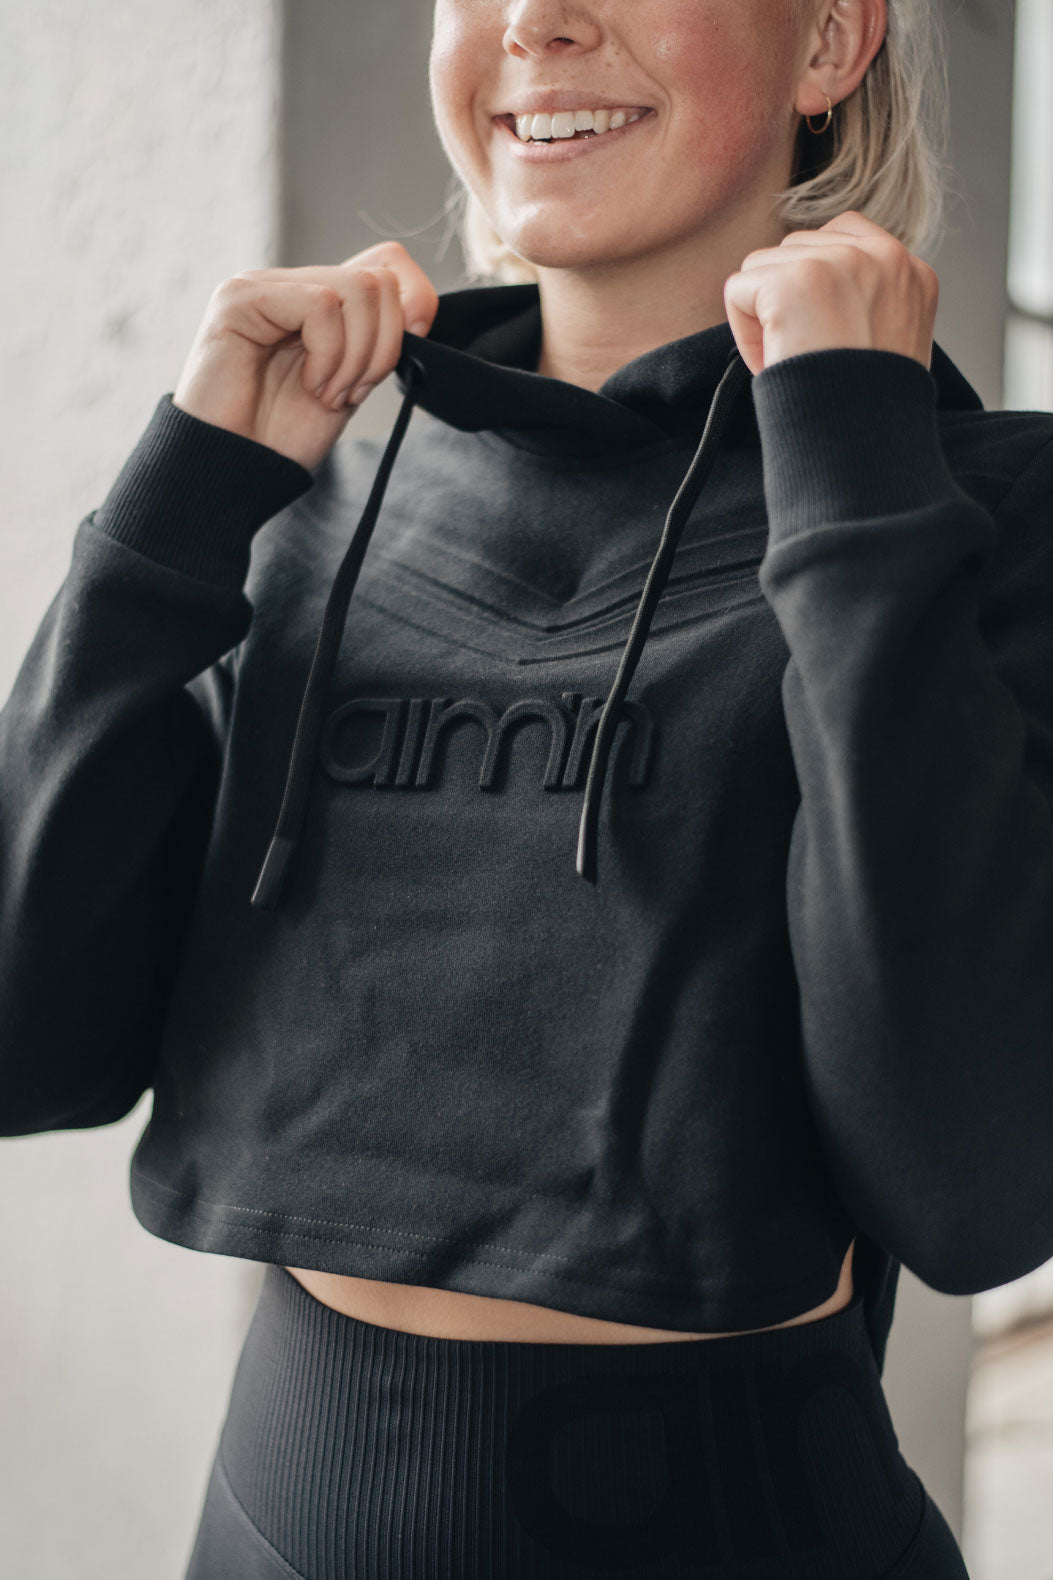 Aim'n Retro Crop Hoodie - Black